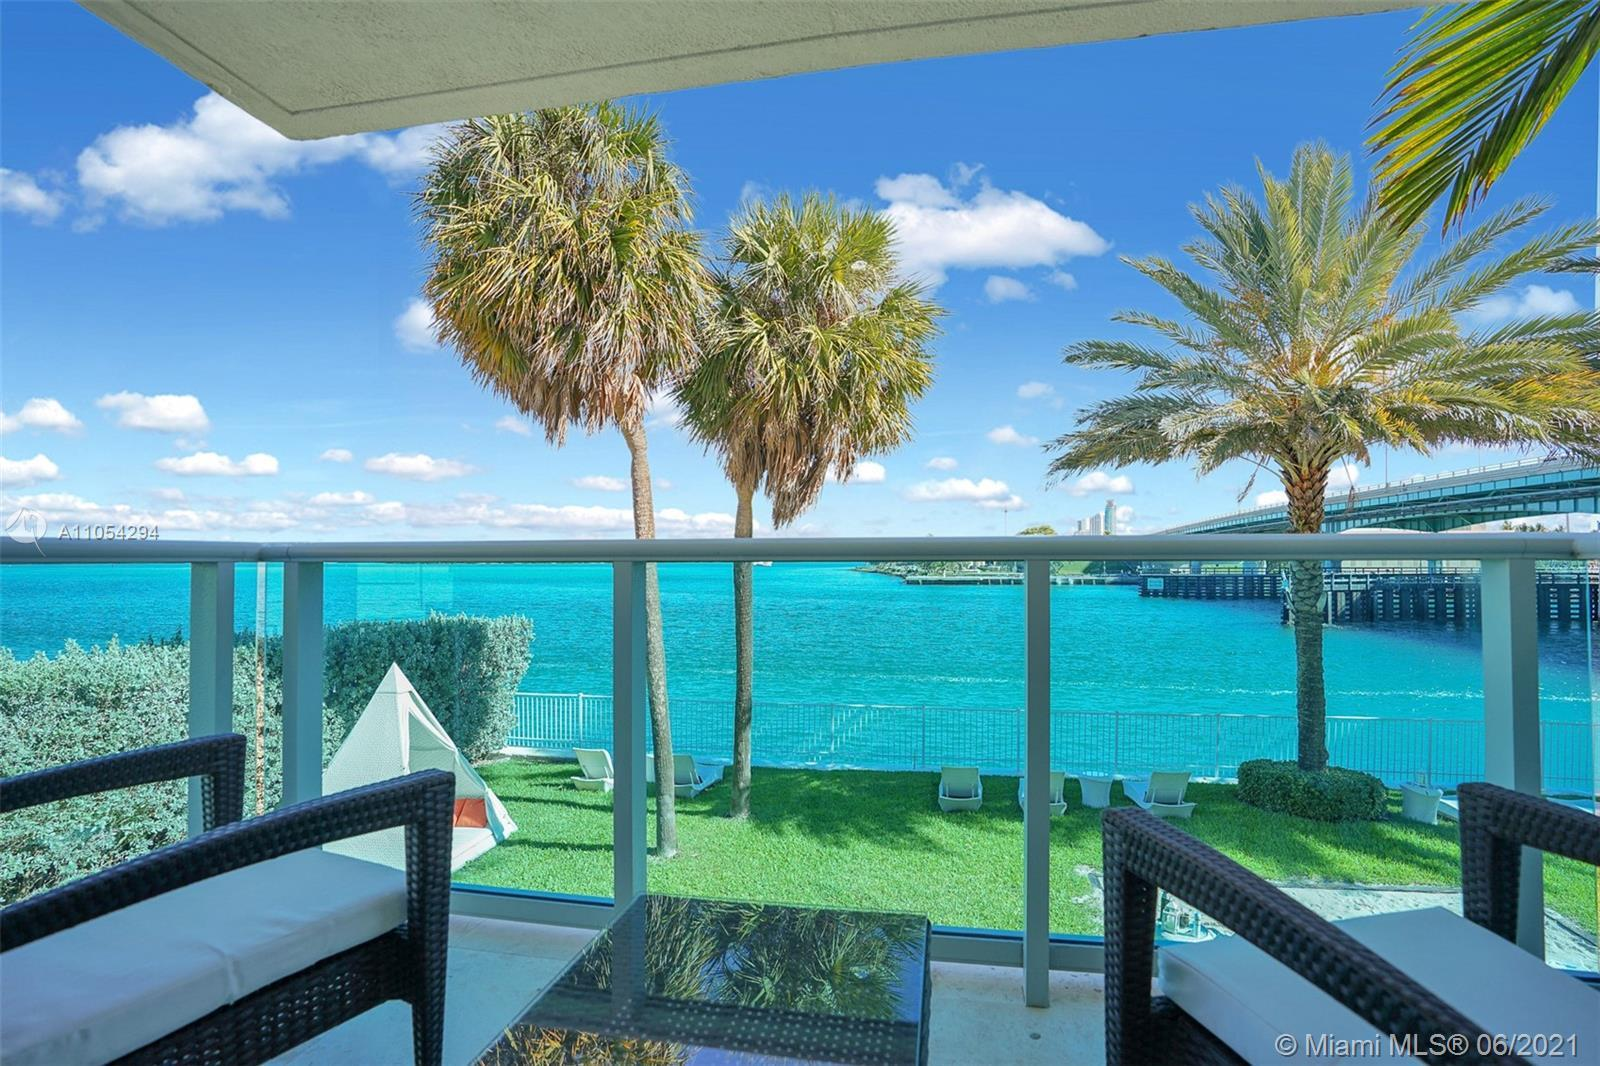 Stunning 1800 square feet apartment with water view from all rooms, quick walk to the beach, as well